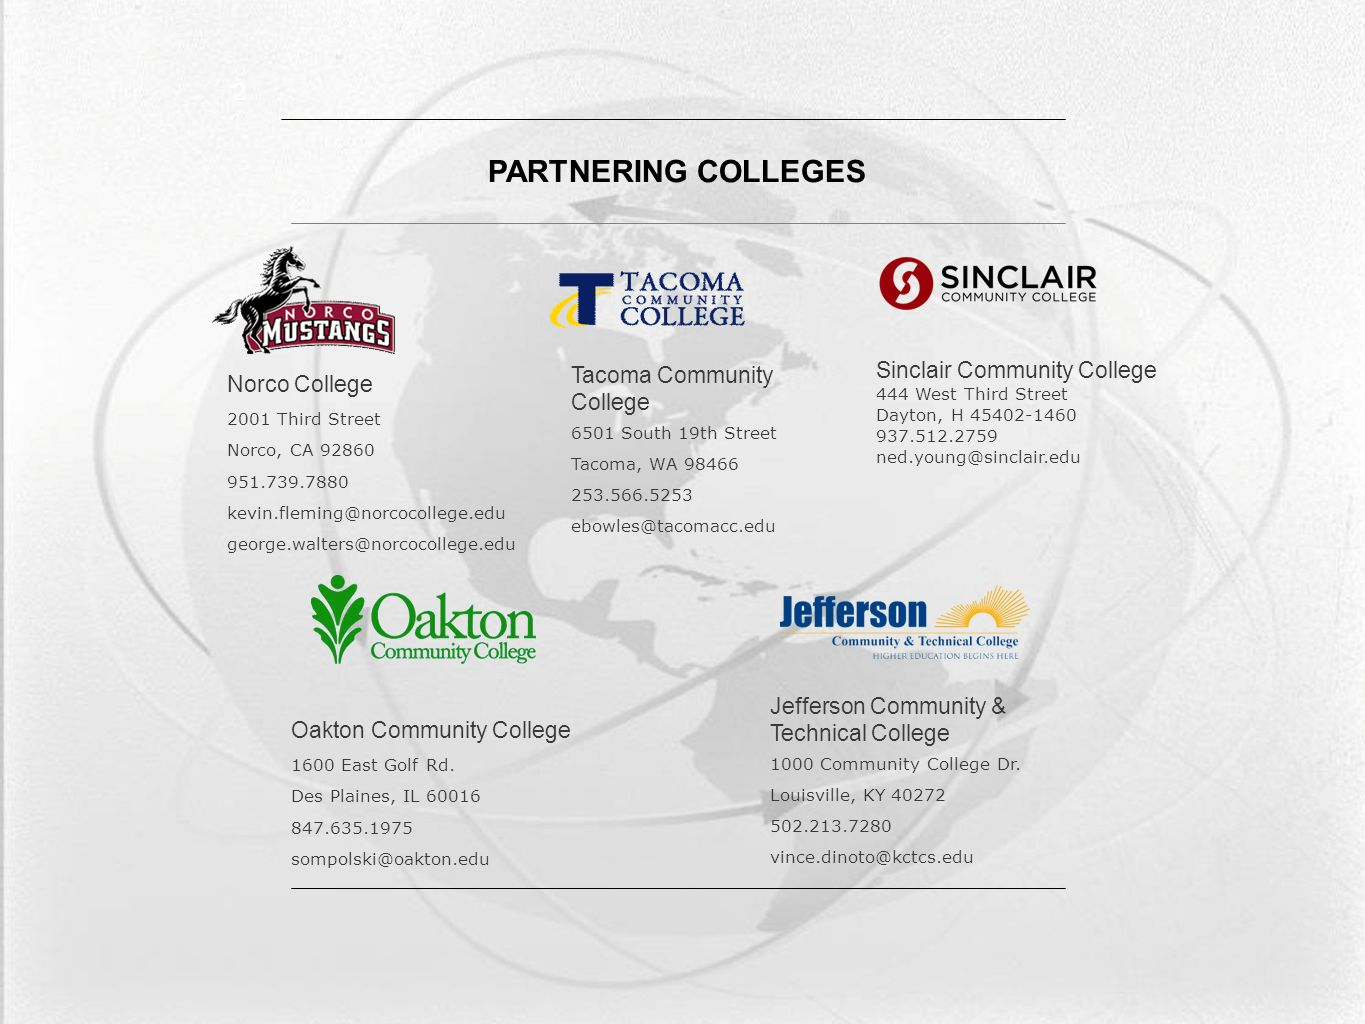 2 Norco College 2001 Third Street Norco, CA 92860 951.739.7880 kevin.fleming@norcocollege.edu george.walters@norcocollege.edu Oakton Community College 1600 East Golf Rd.